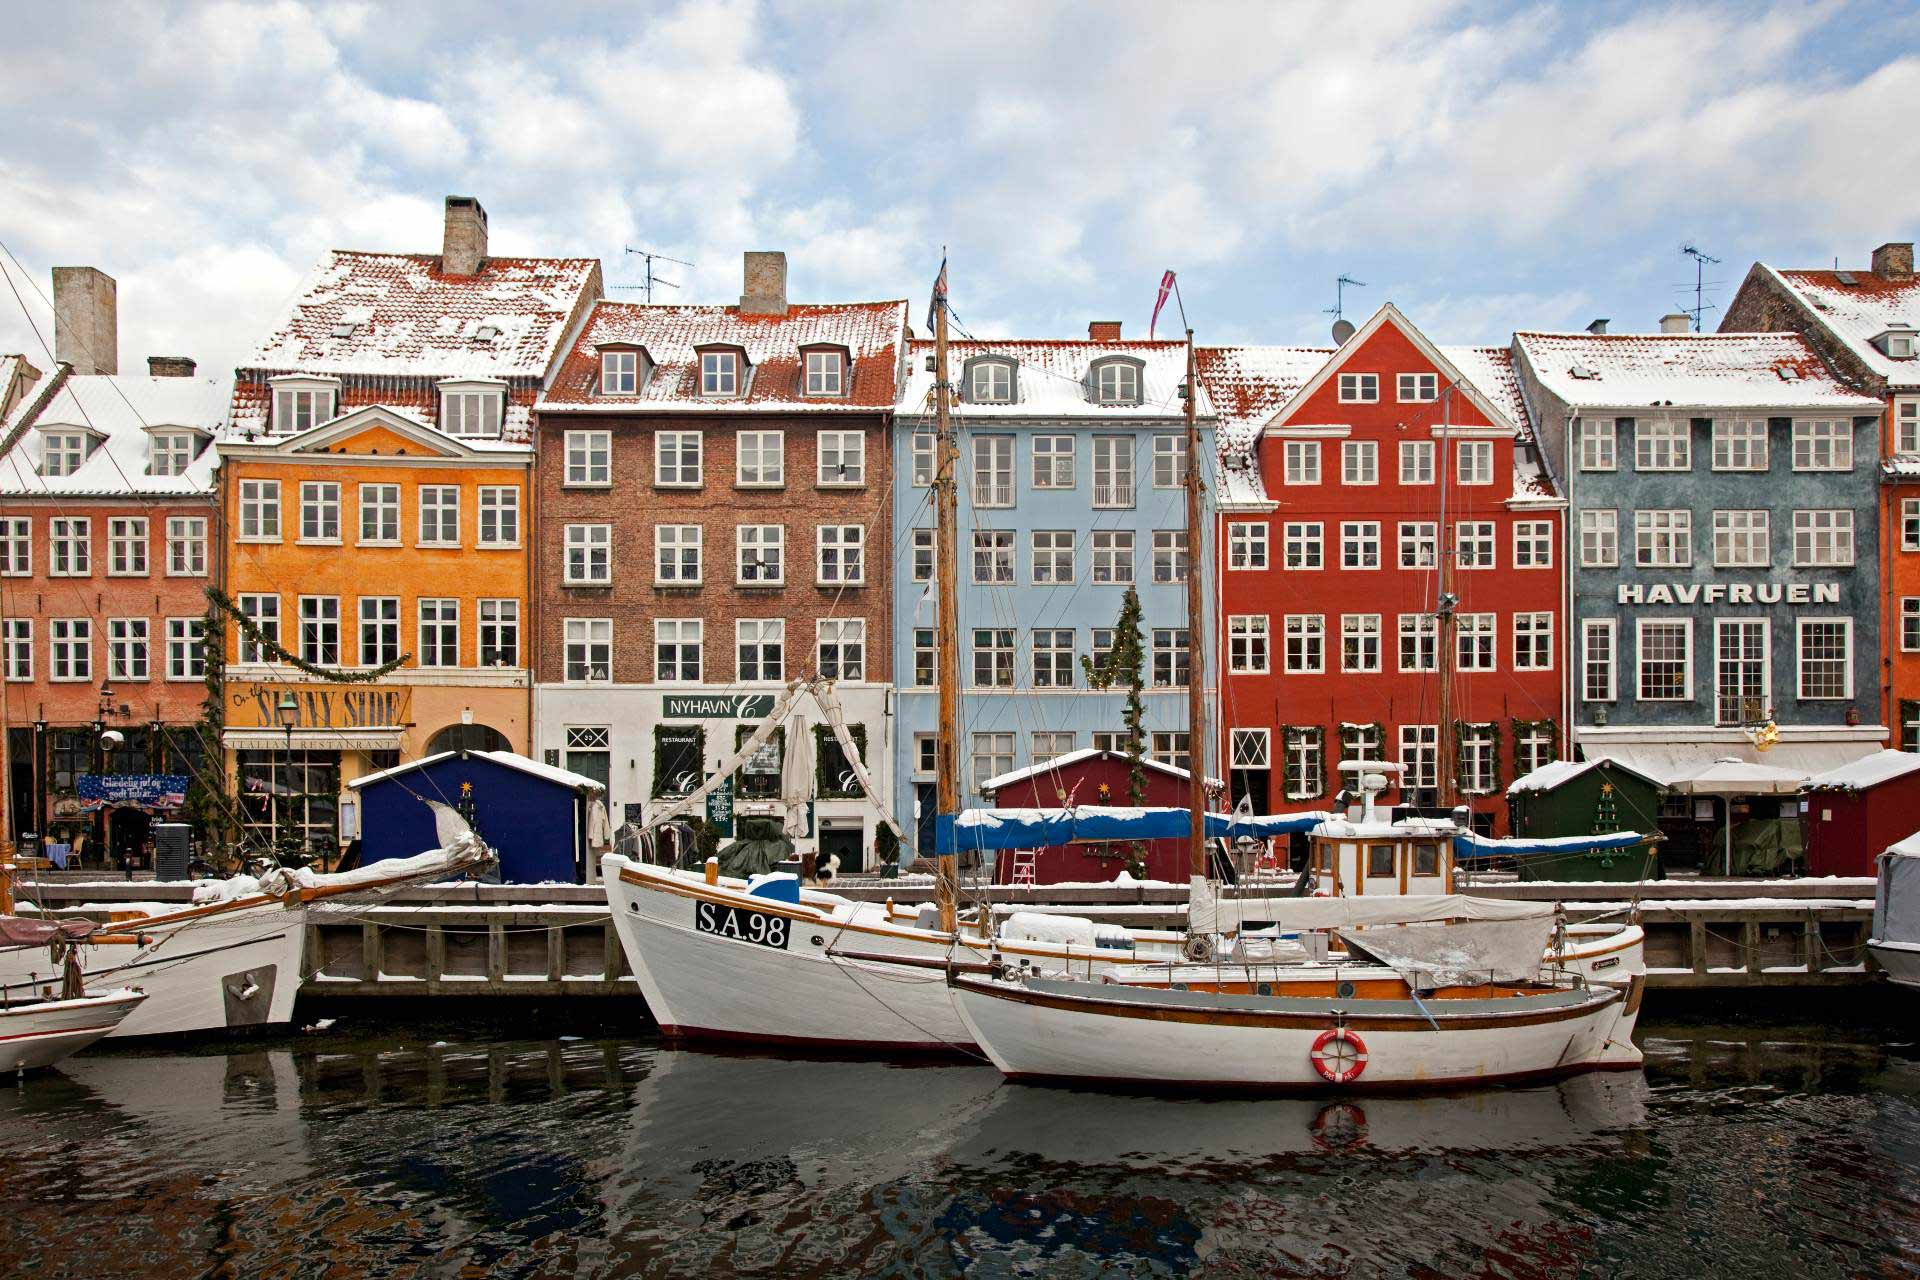 Nyhavn canal under the snow